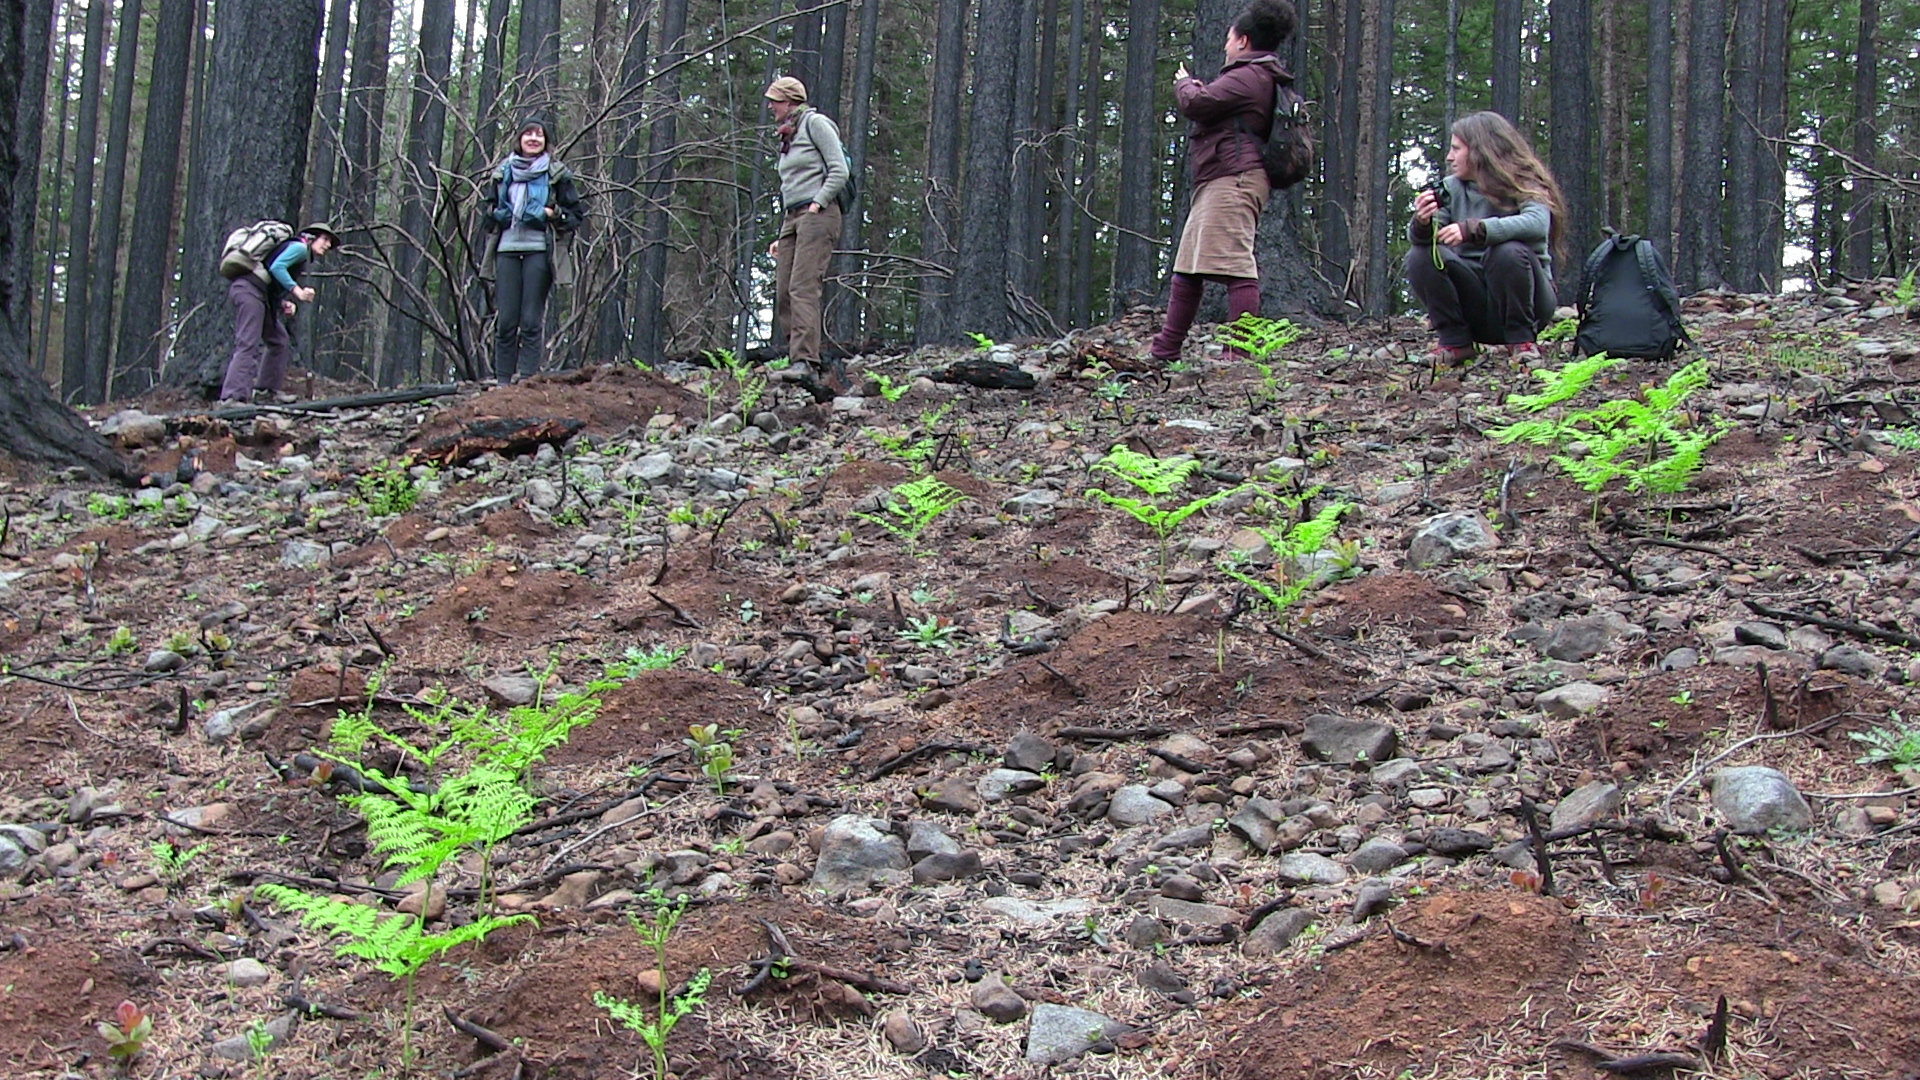 group of volunteers surveying new growth in a previous burn area from the 36 Pit fire in 2014. Foreground shows sprigs of bright new green against the rocky soil.